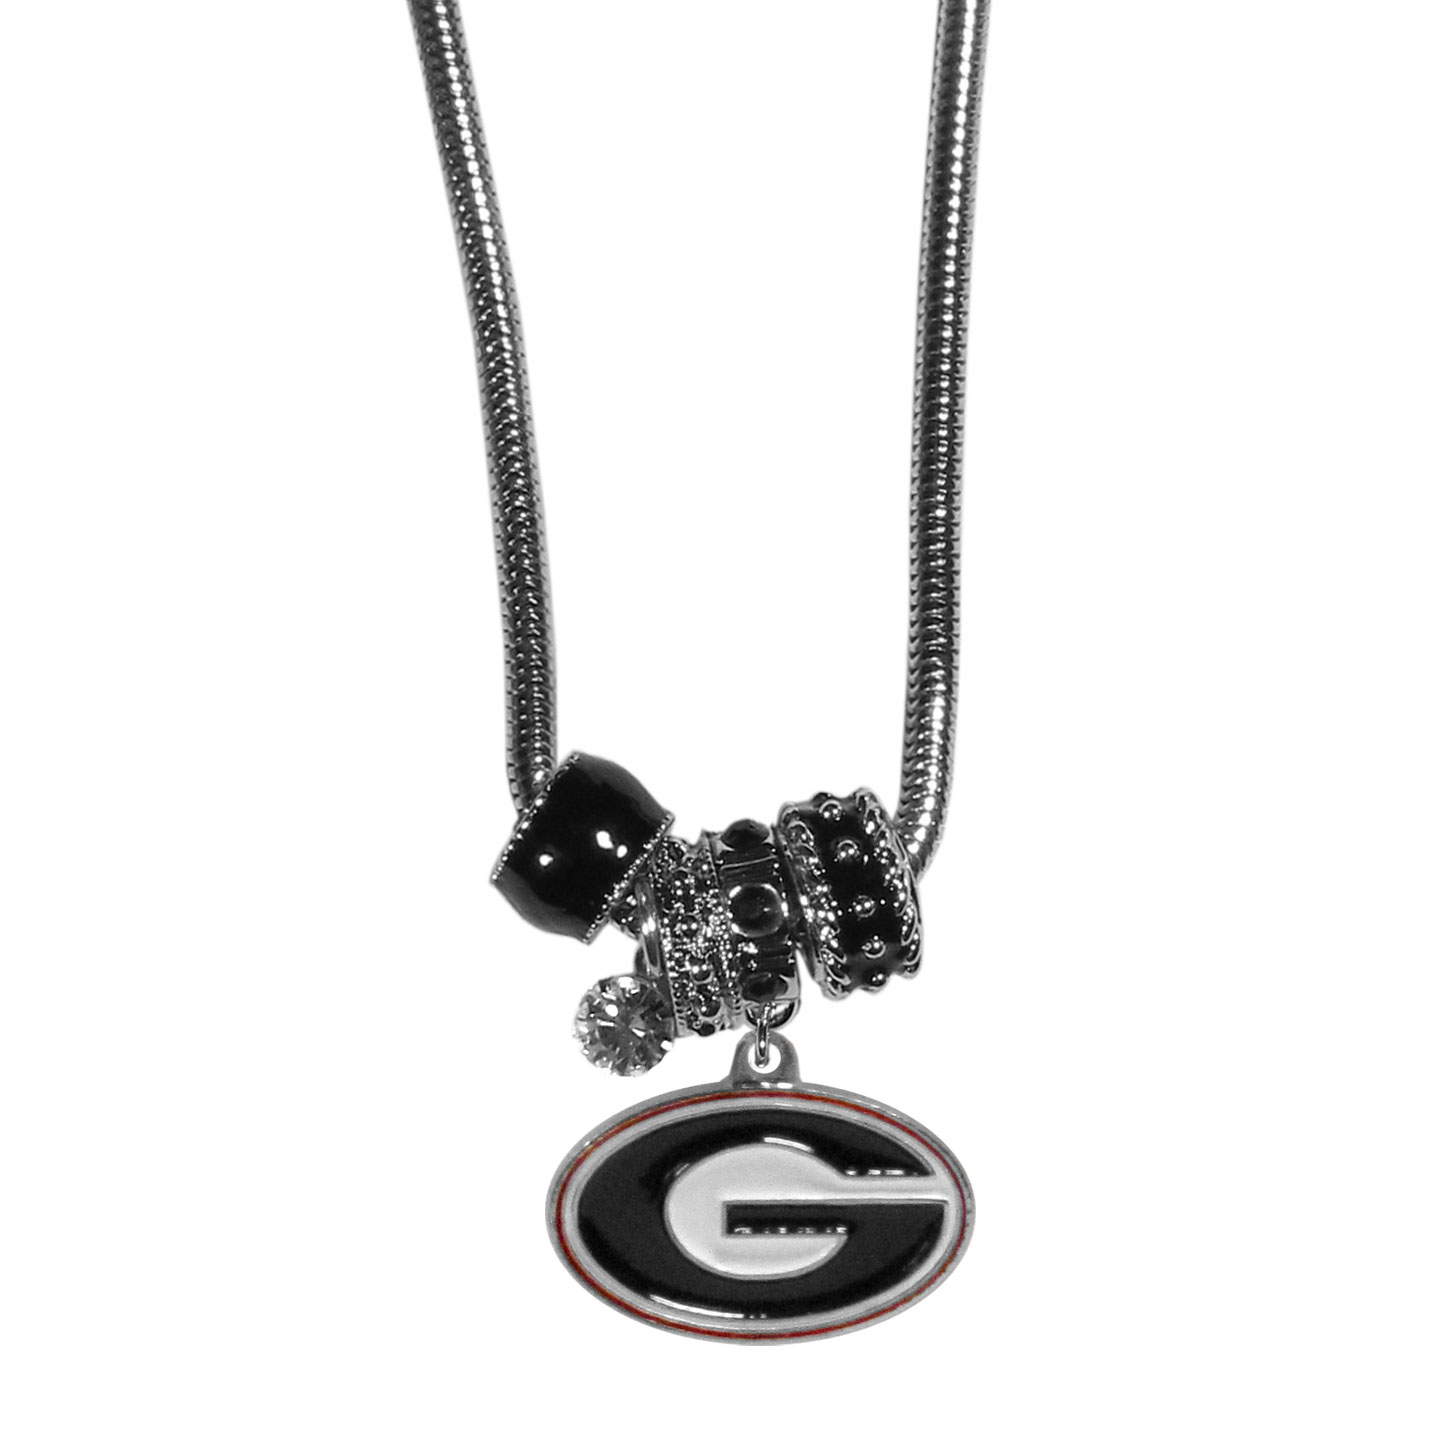 Georgia Bulldogs Euro Bead Necklace - We have combined the wildly popular Euro style beads with your favorite team to create our Georgia Bulldogs bead necklace. The 18 inch snake chain features 4 Euro beads with enameled team colors and rhinestone accents with a high polish, nickel free charm and rhinestone charm. Perfect way to show off your team pride.